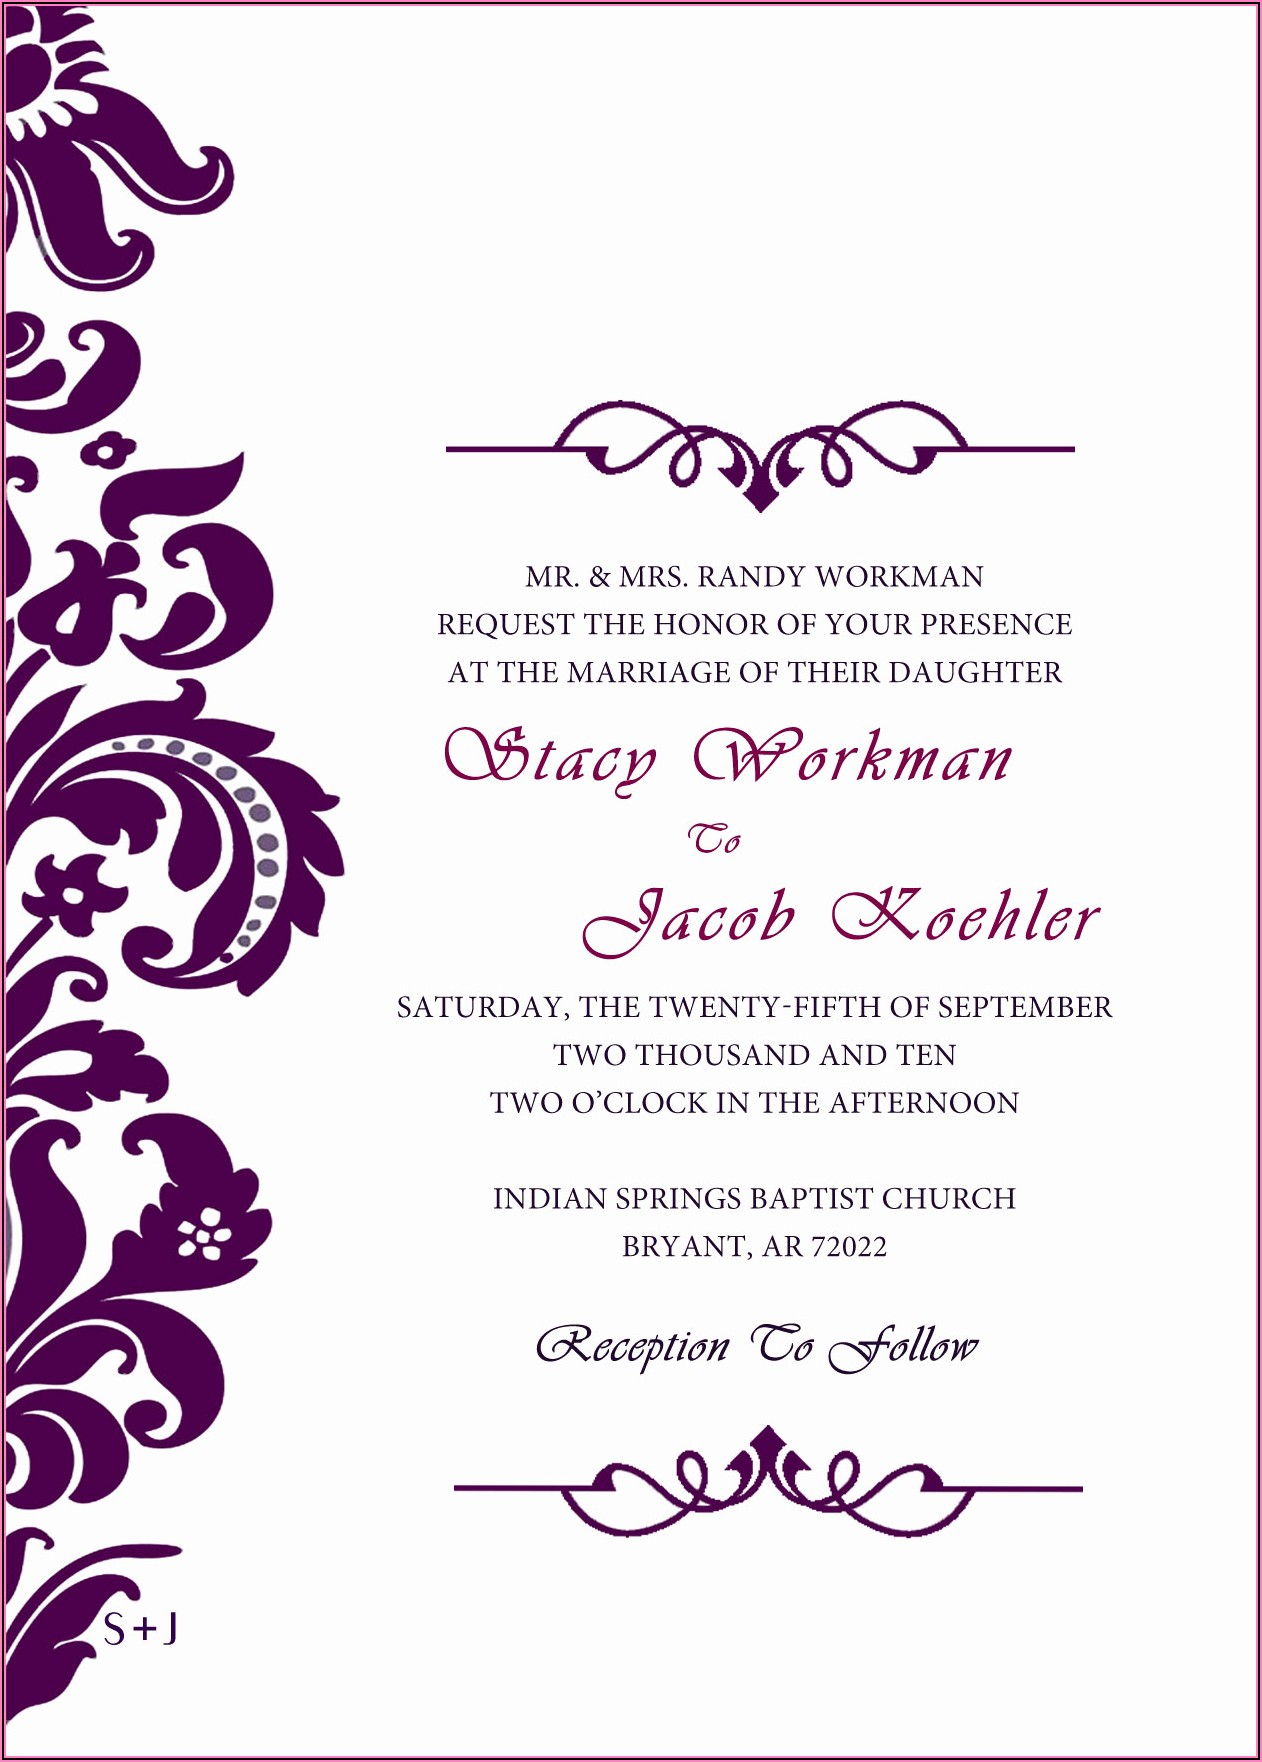 Hindu Wedding Invitation Templates Psd